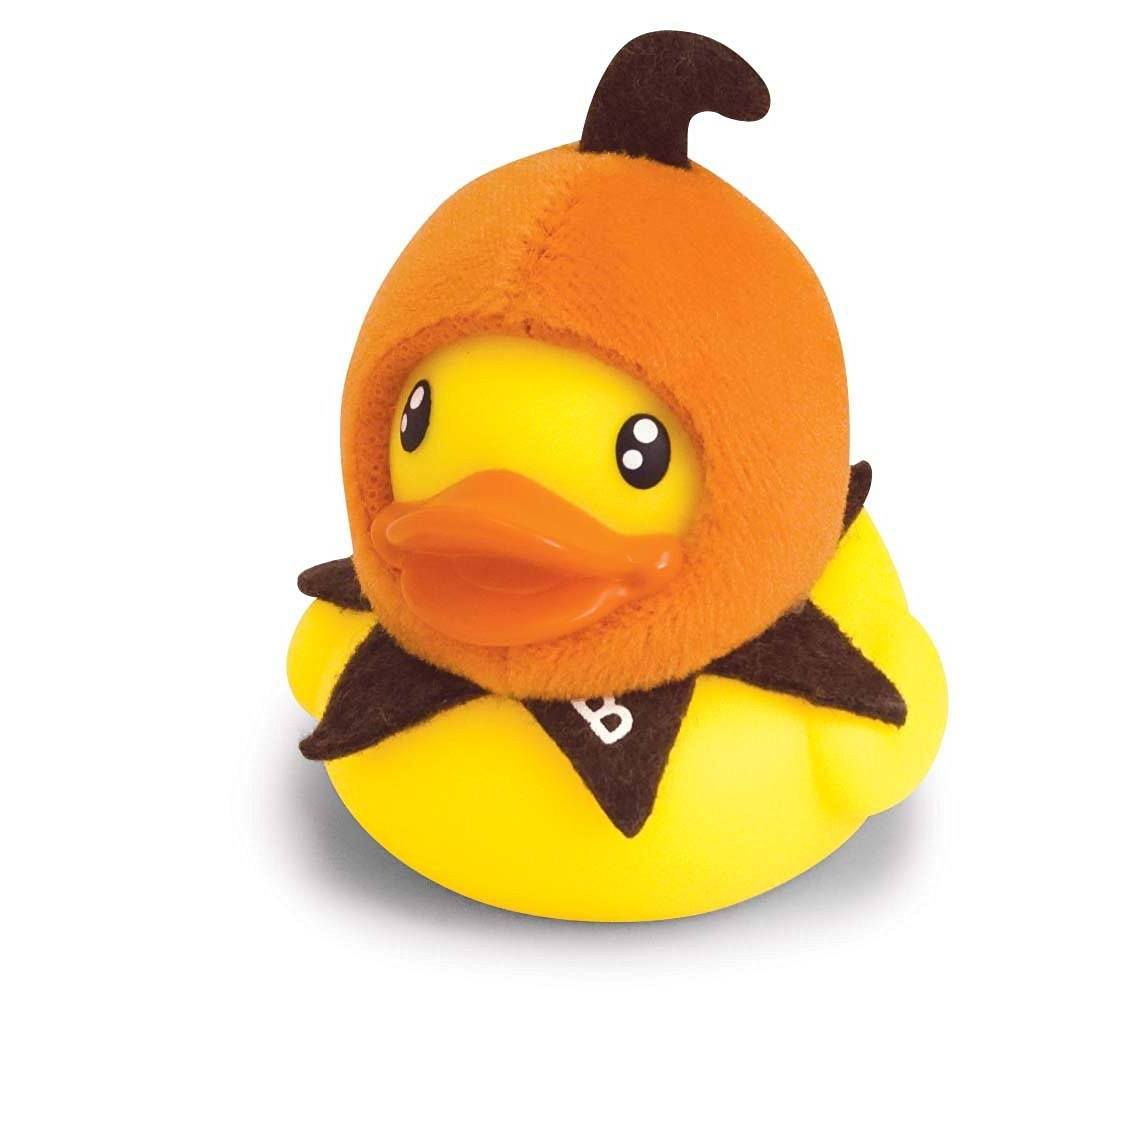 Buy B.Duck Pumpkin Floating Duck in Cheap Price on Alibaba.com